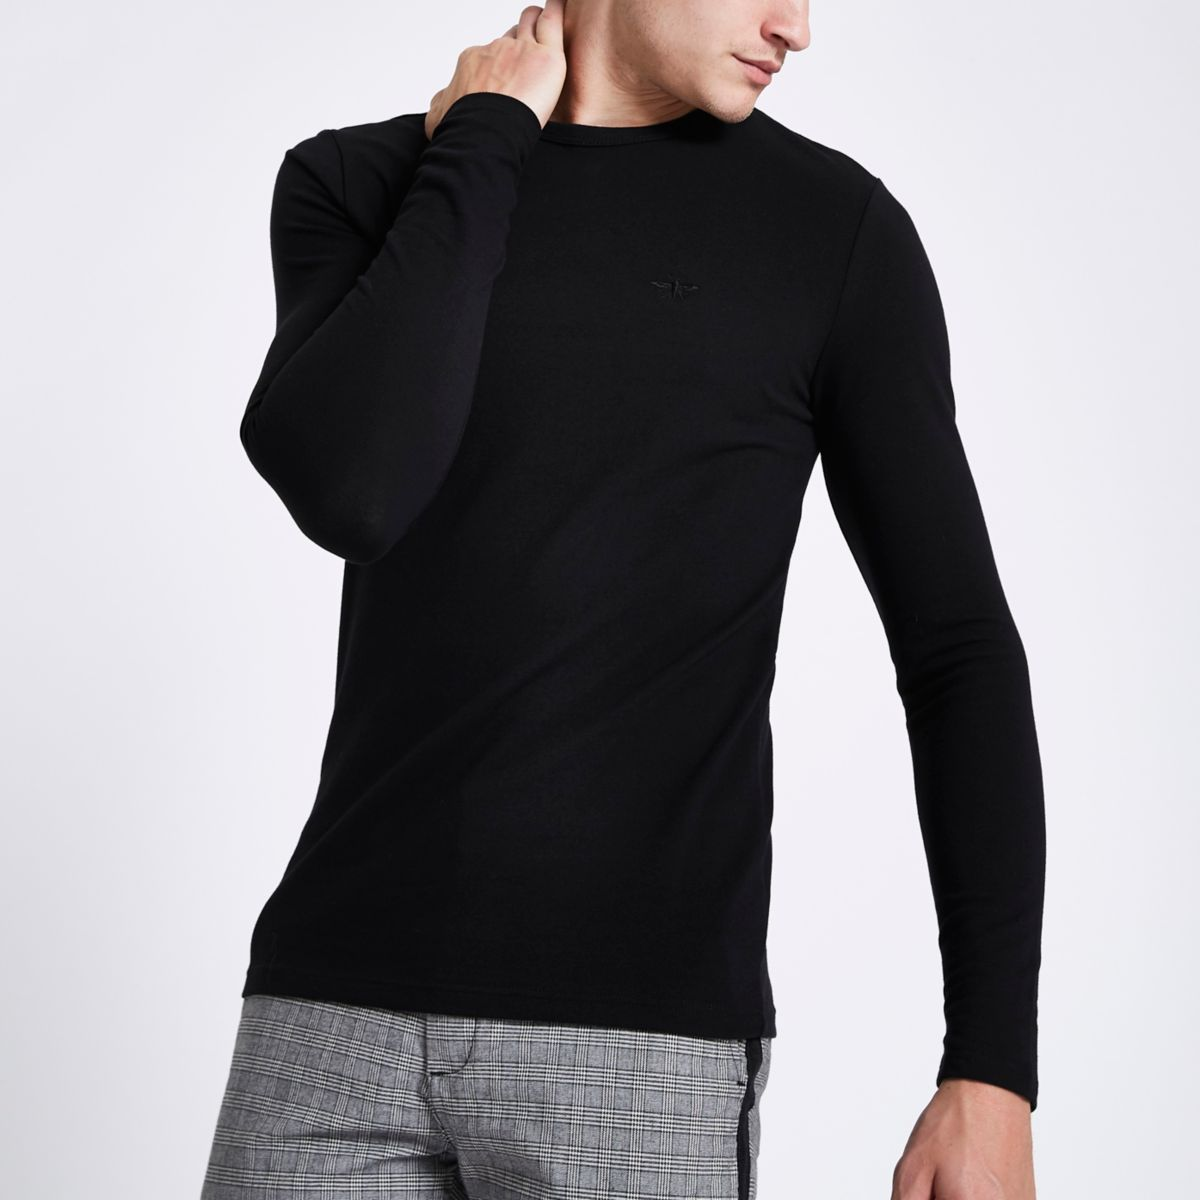 Black pique long sleeve muscle fit t shirt long sleeve t for Black fitted long sleeve t shirts